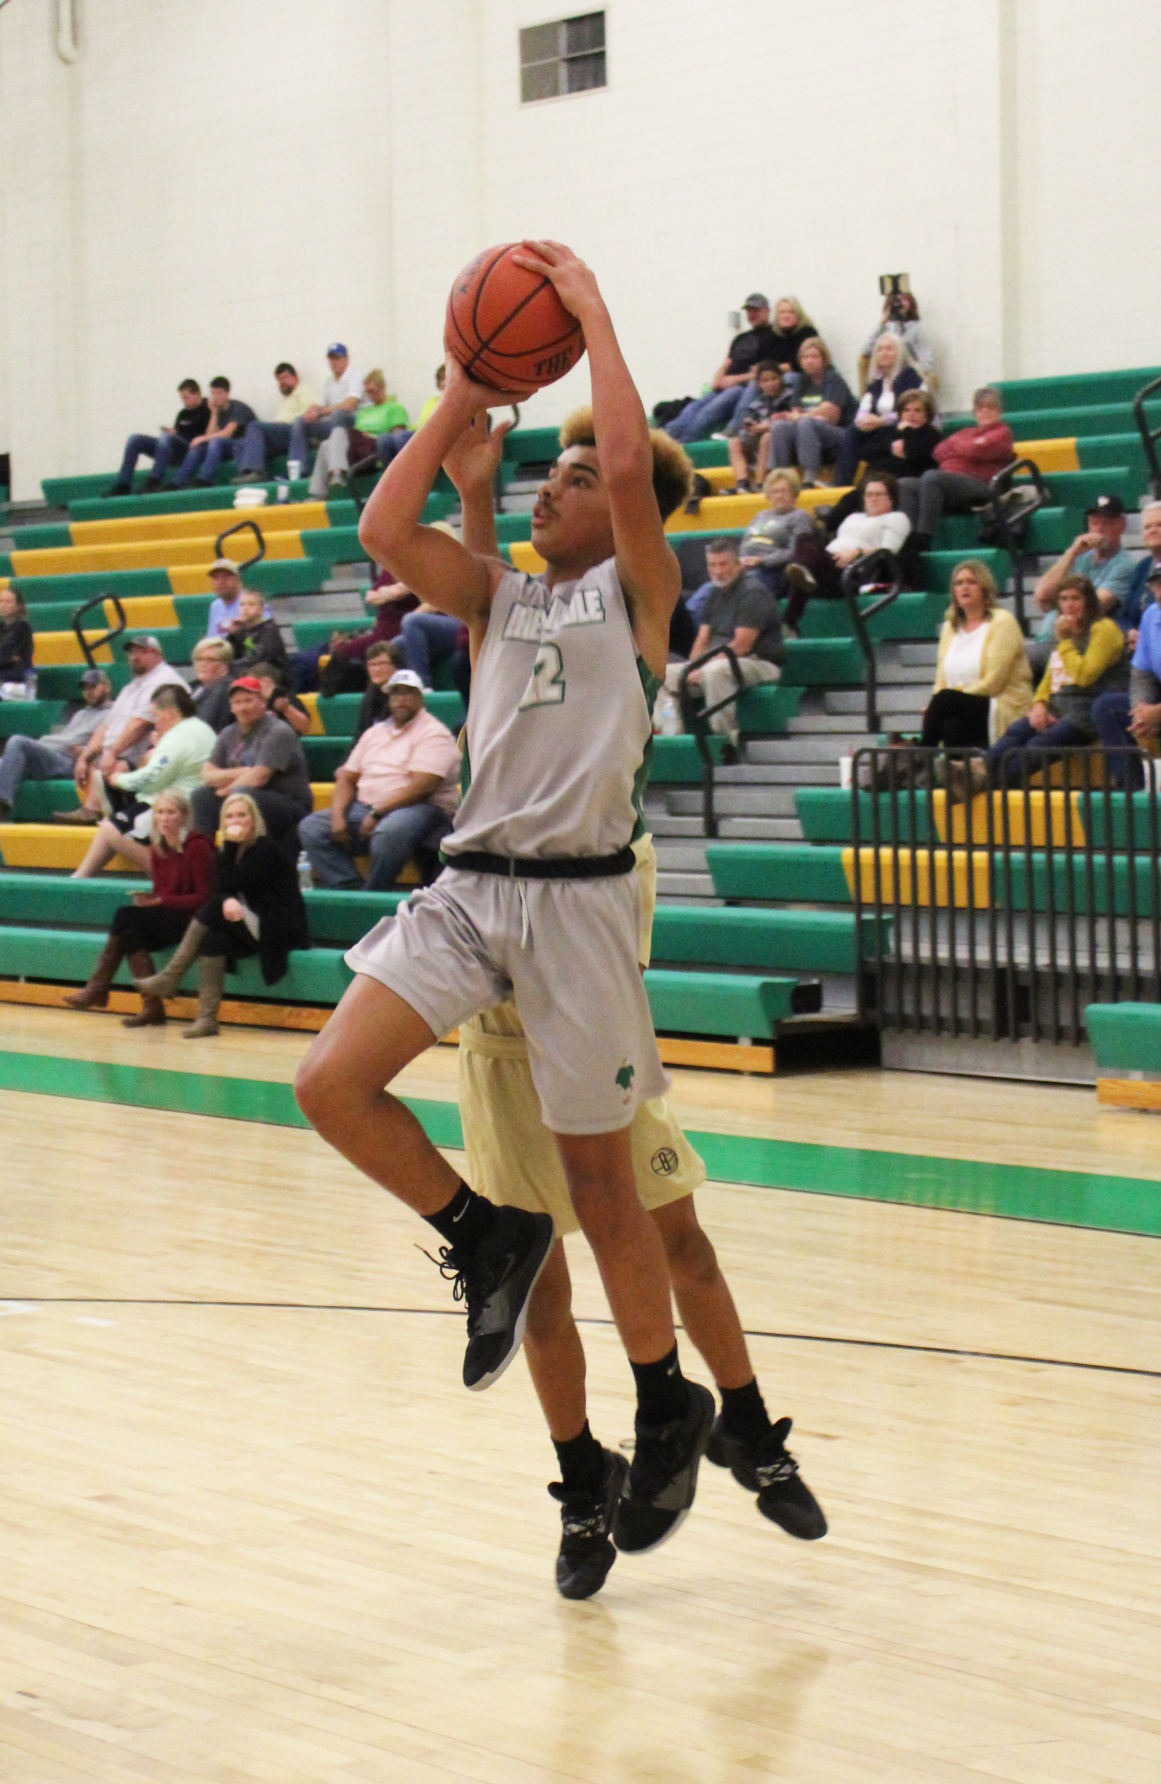 RMS TEAMS FALL TO ENGLEWOOD AT HOME